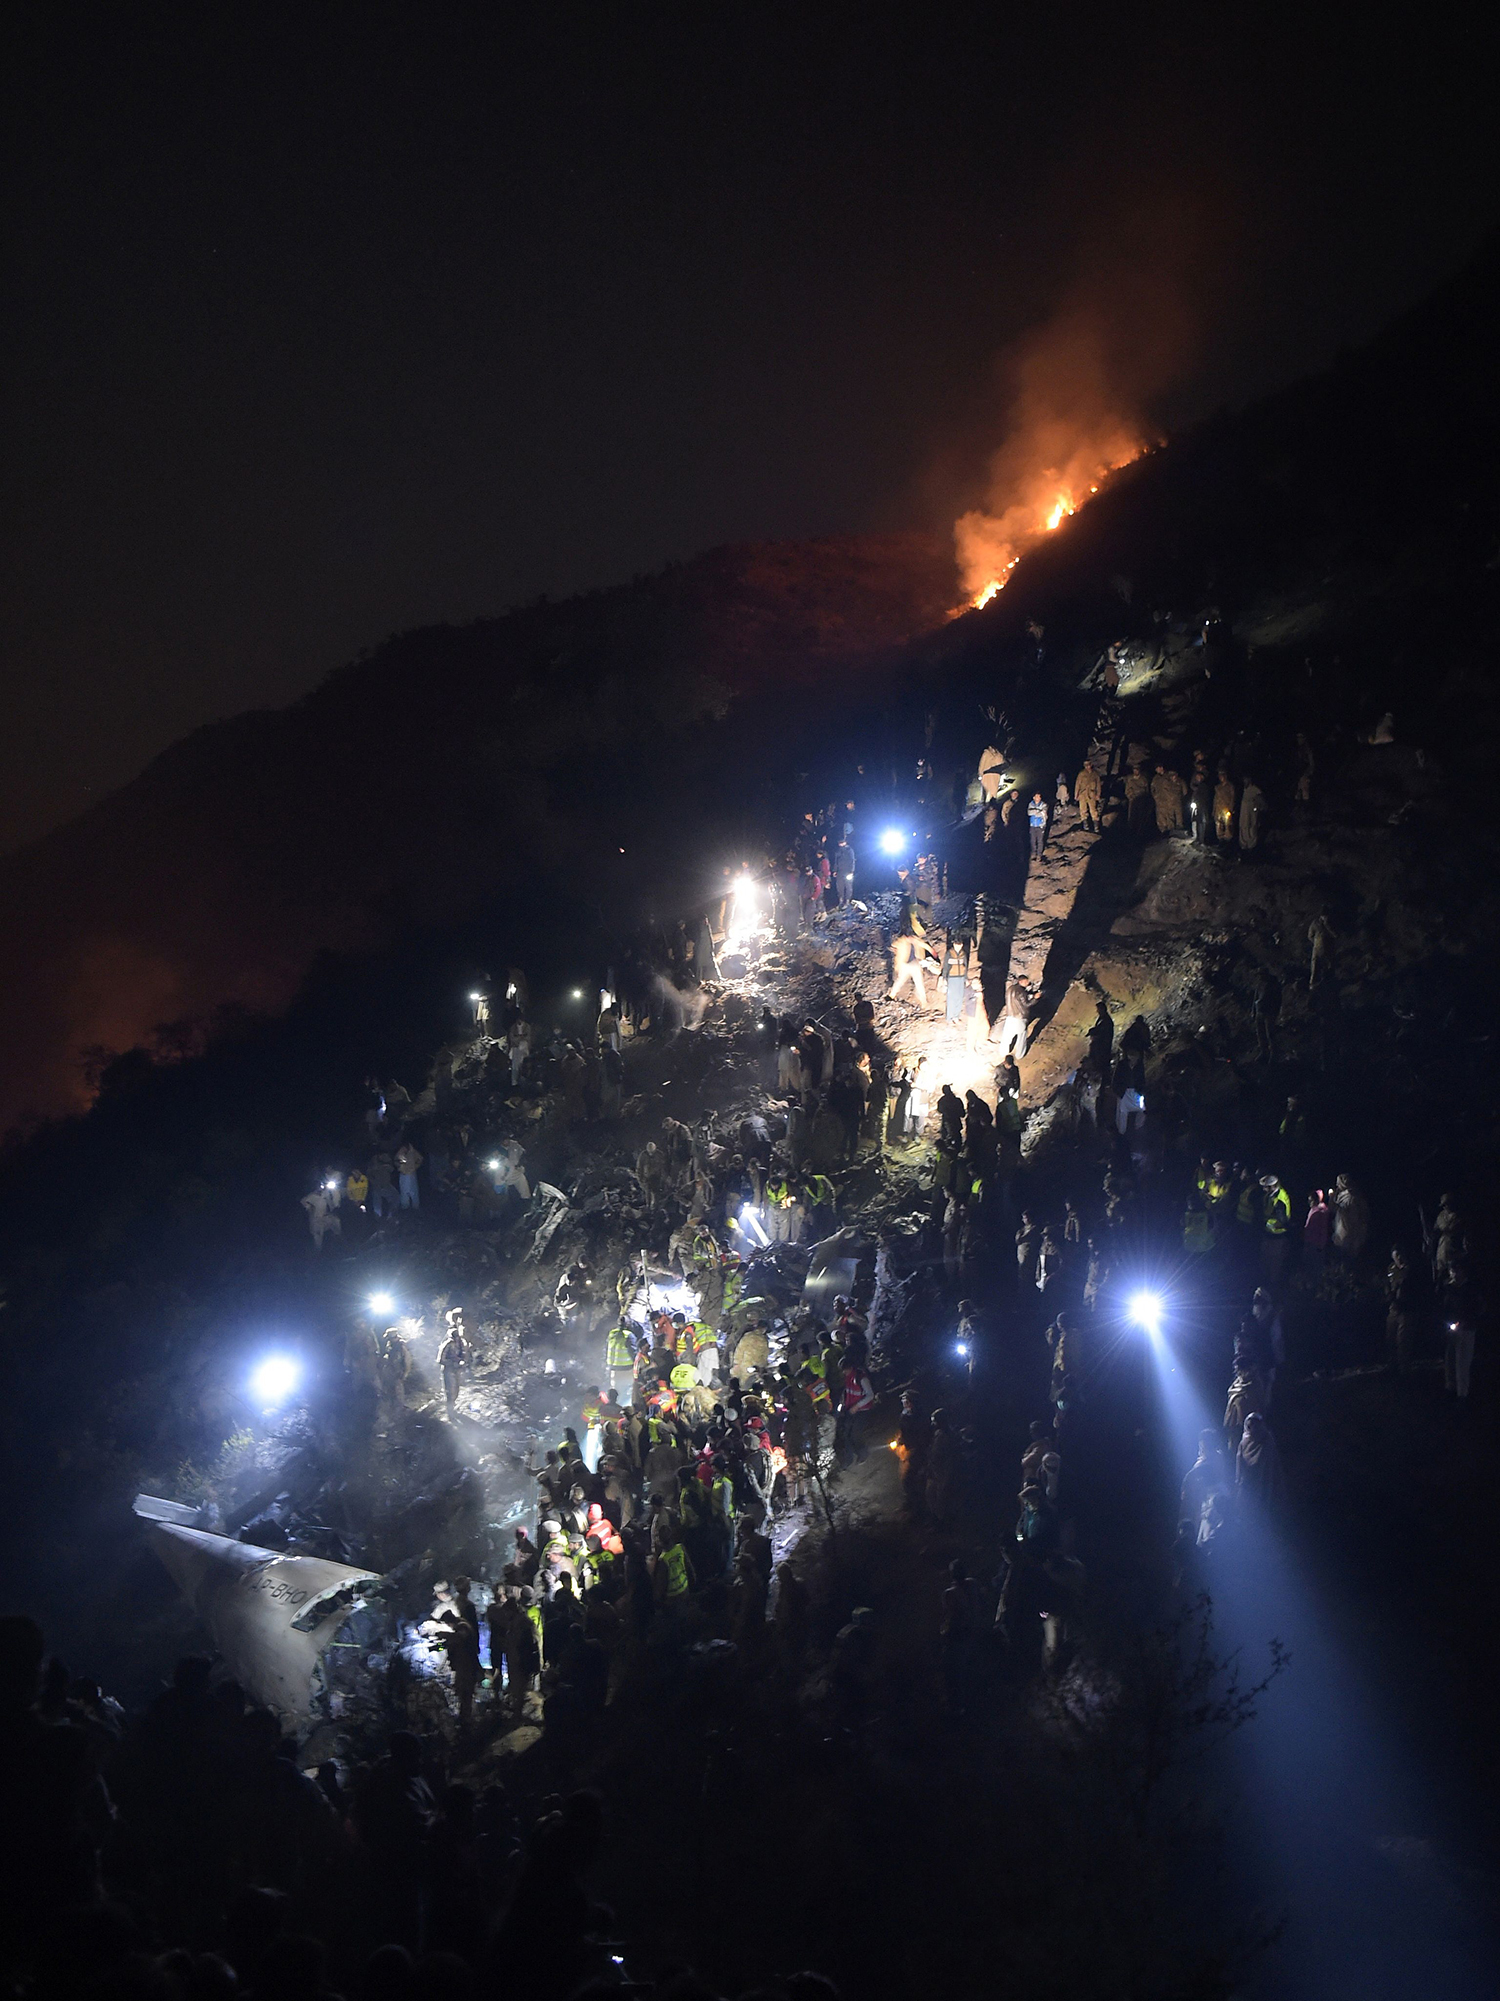 TOPSHOT - Pakistani soldiers and volunteers search for victims from the wreckage of the crashed PIA passenger plane Flight PK661 at the site in the village of Saddha Batolni in the Abbottabad district of Khyber Pakhtunkhwa province on December 7, 2016. A Pakistani plane carrying 48 people crashed on December 7, in the country's mountainous north and burst into flames killing everyone on board, authorities said, in one of the deadliest aviation accidents in the country's history. Pakistan International Airlines Flight PK661 came down while travelling from the city of Chitral to Islamabad, the civil aviation authority said. / AFP PHOTO / AAMIR QURESHI / TT / kod 444